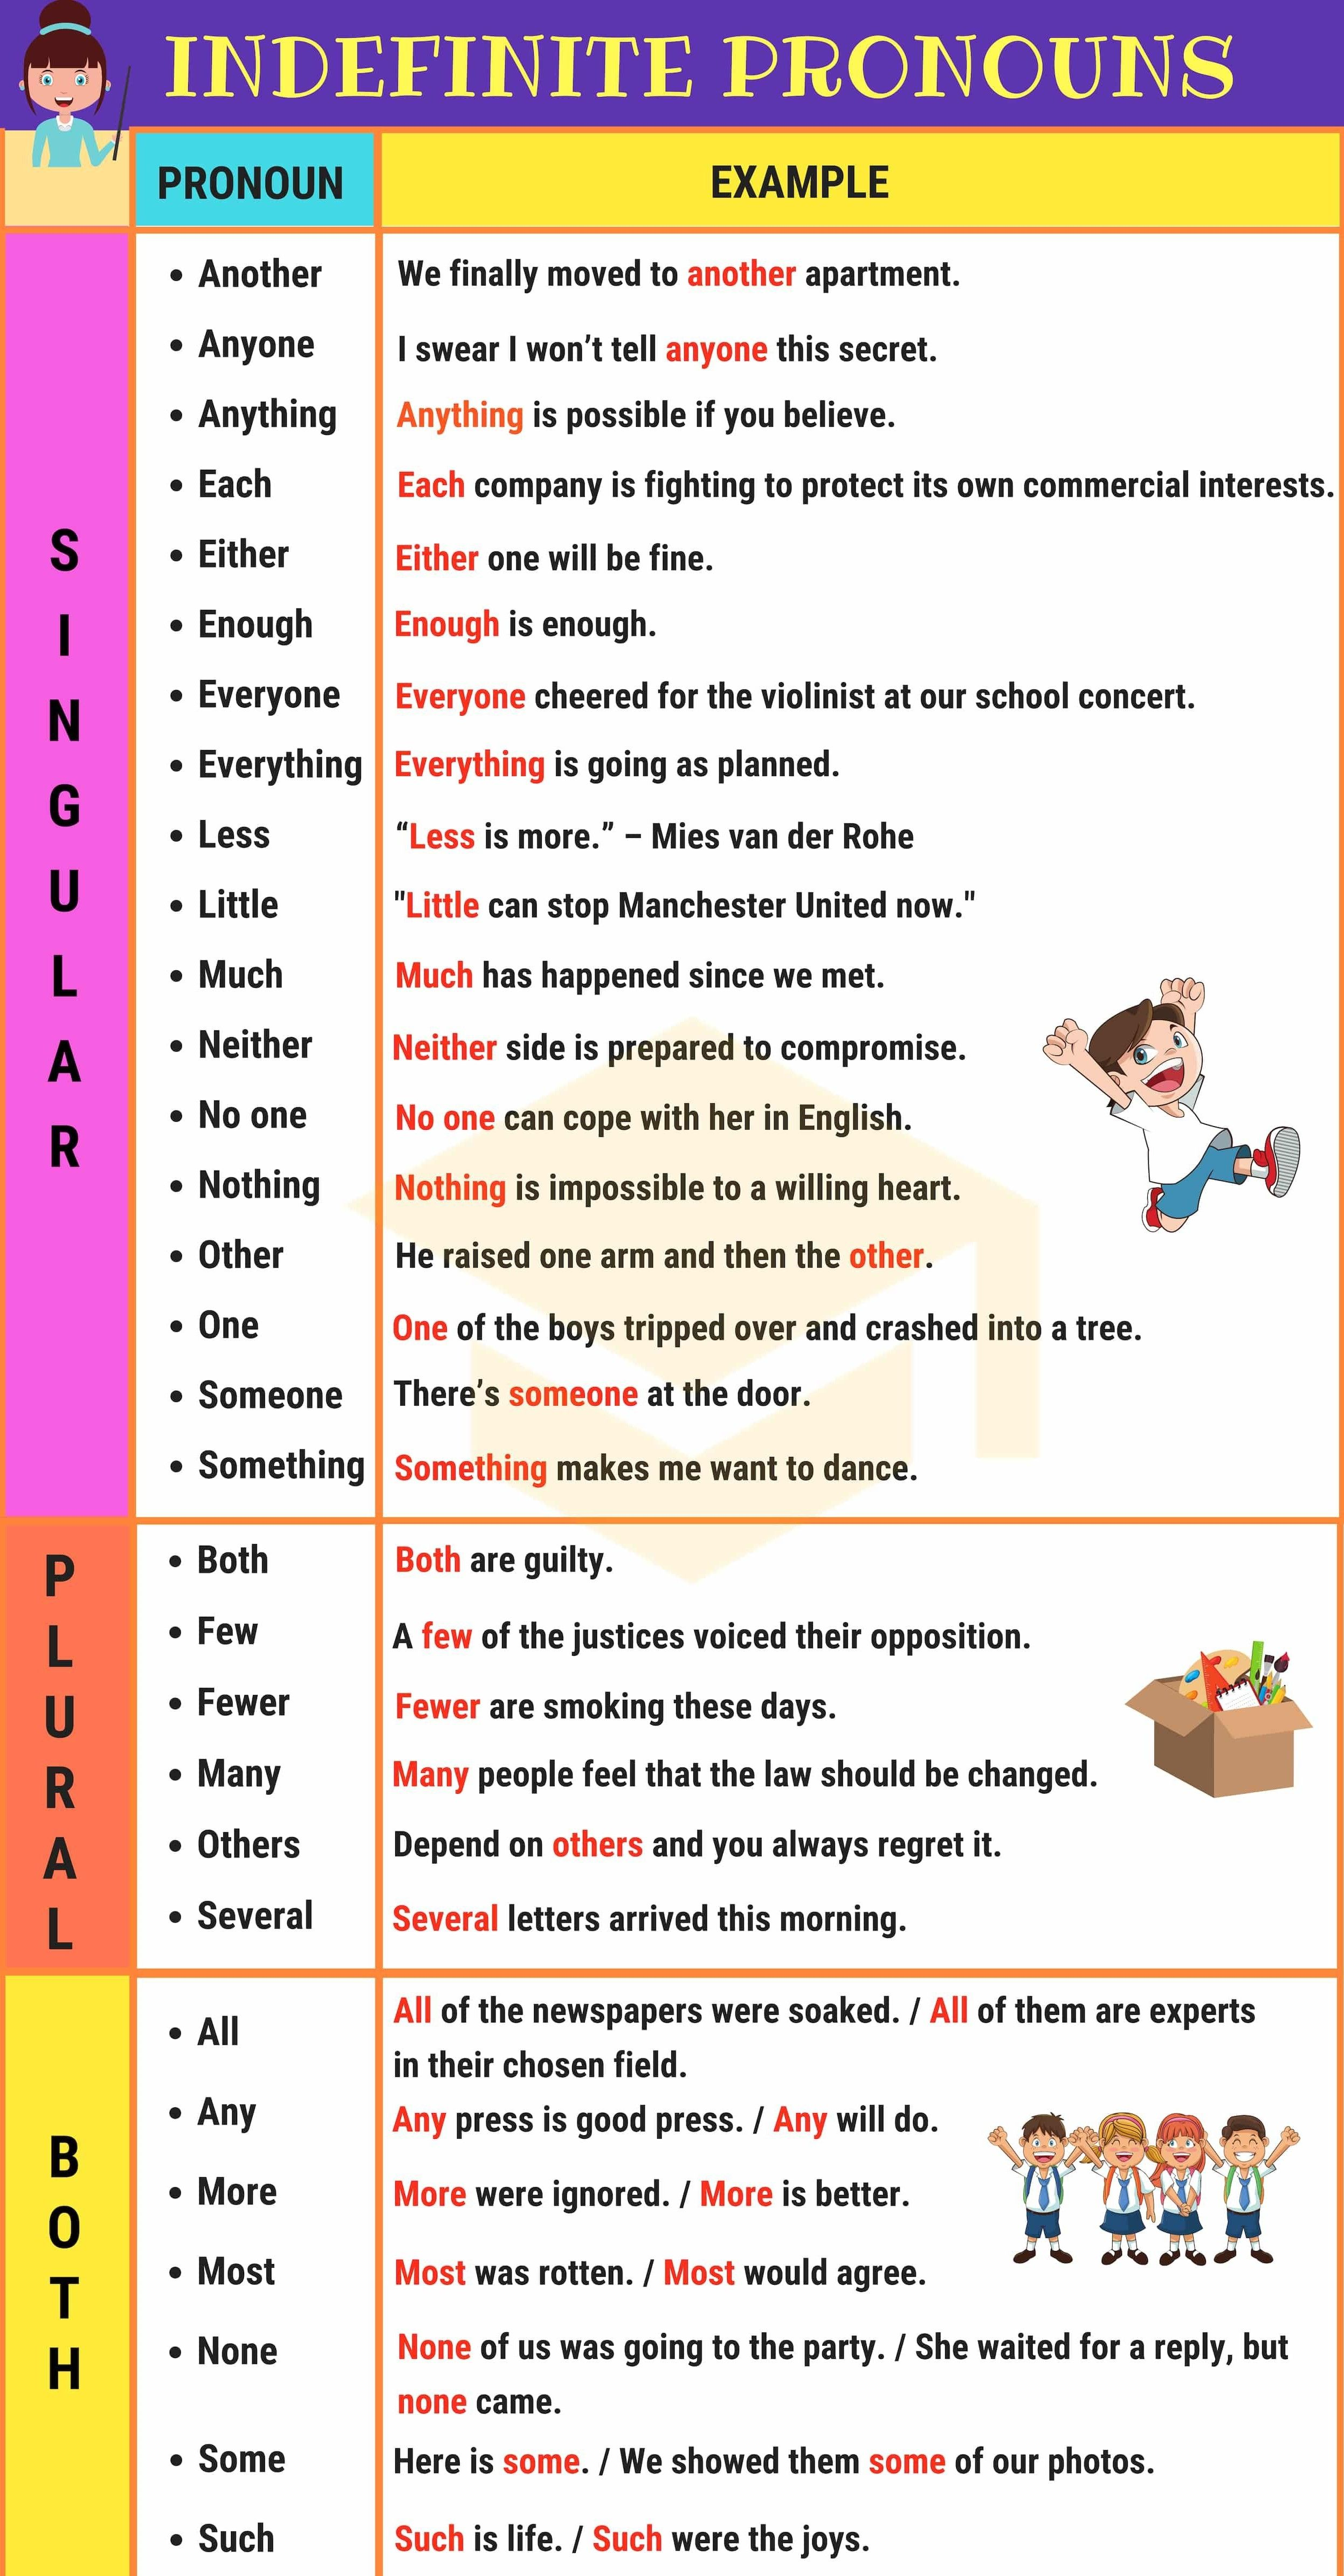 We Use Indefinite Pronouns To Refer To People Or Things